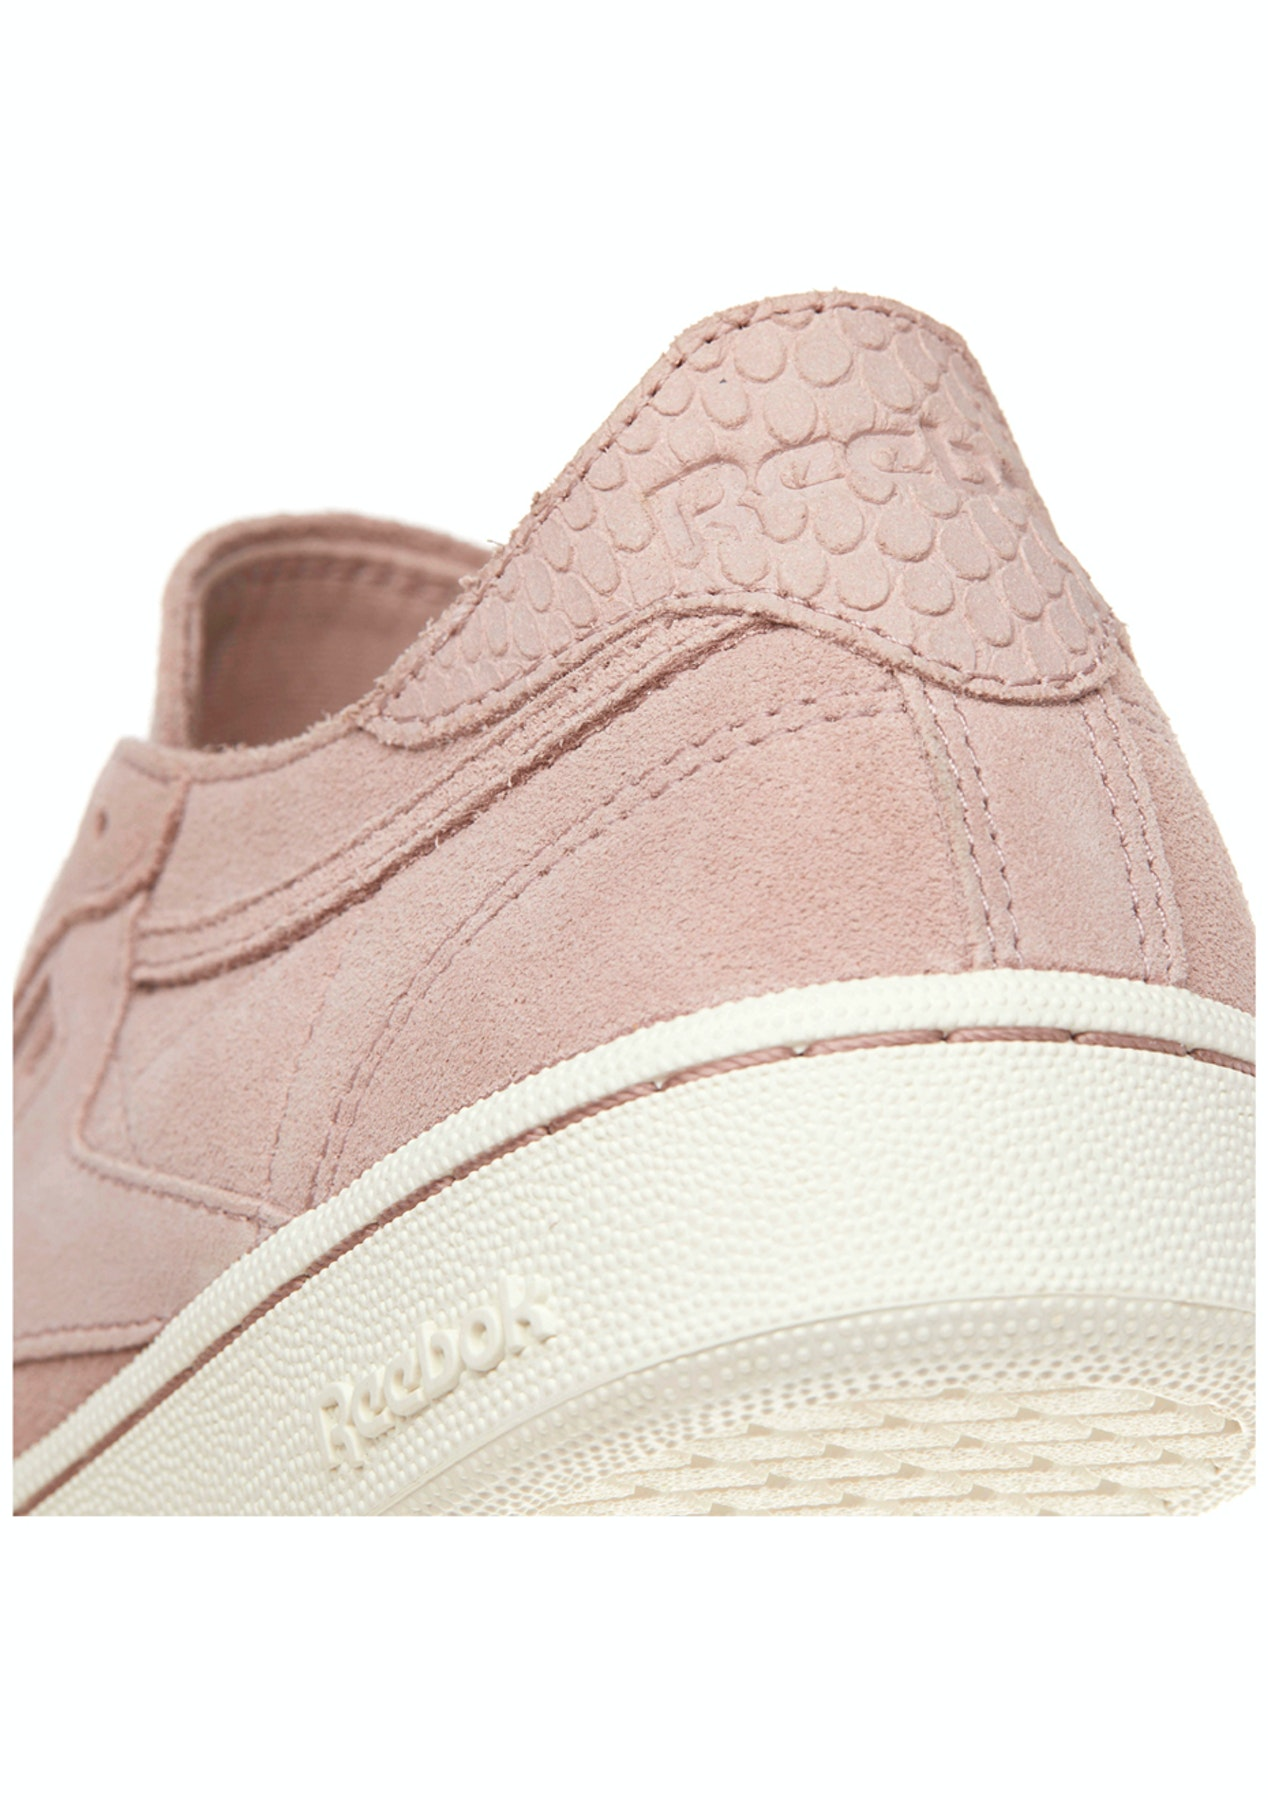 6cfe53645b913 Reebok Womens - Club C 85 Fbt Decon Shell Pink Chalk - Once a Year Reebok -  Onceit